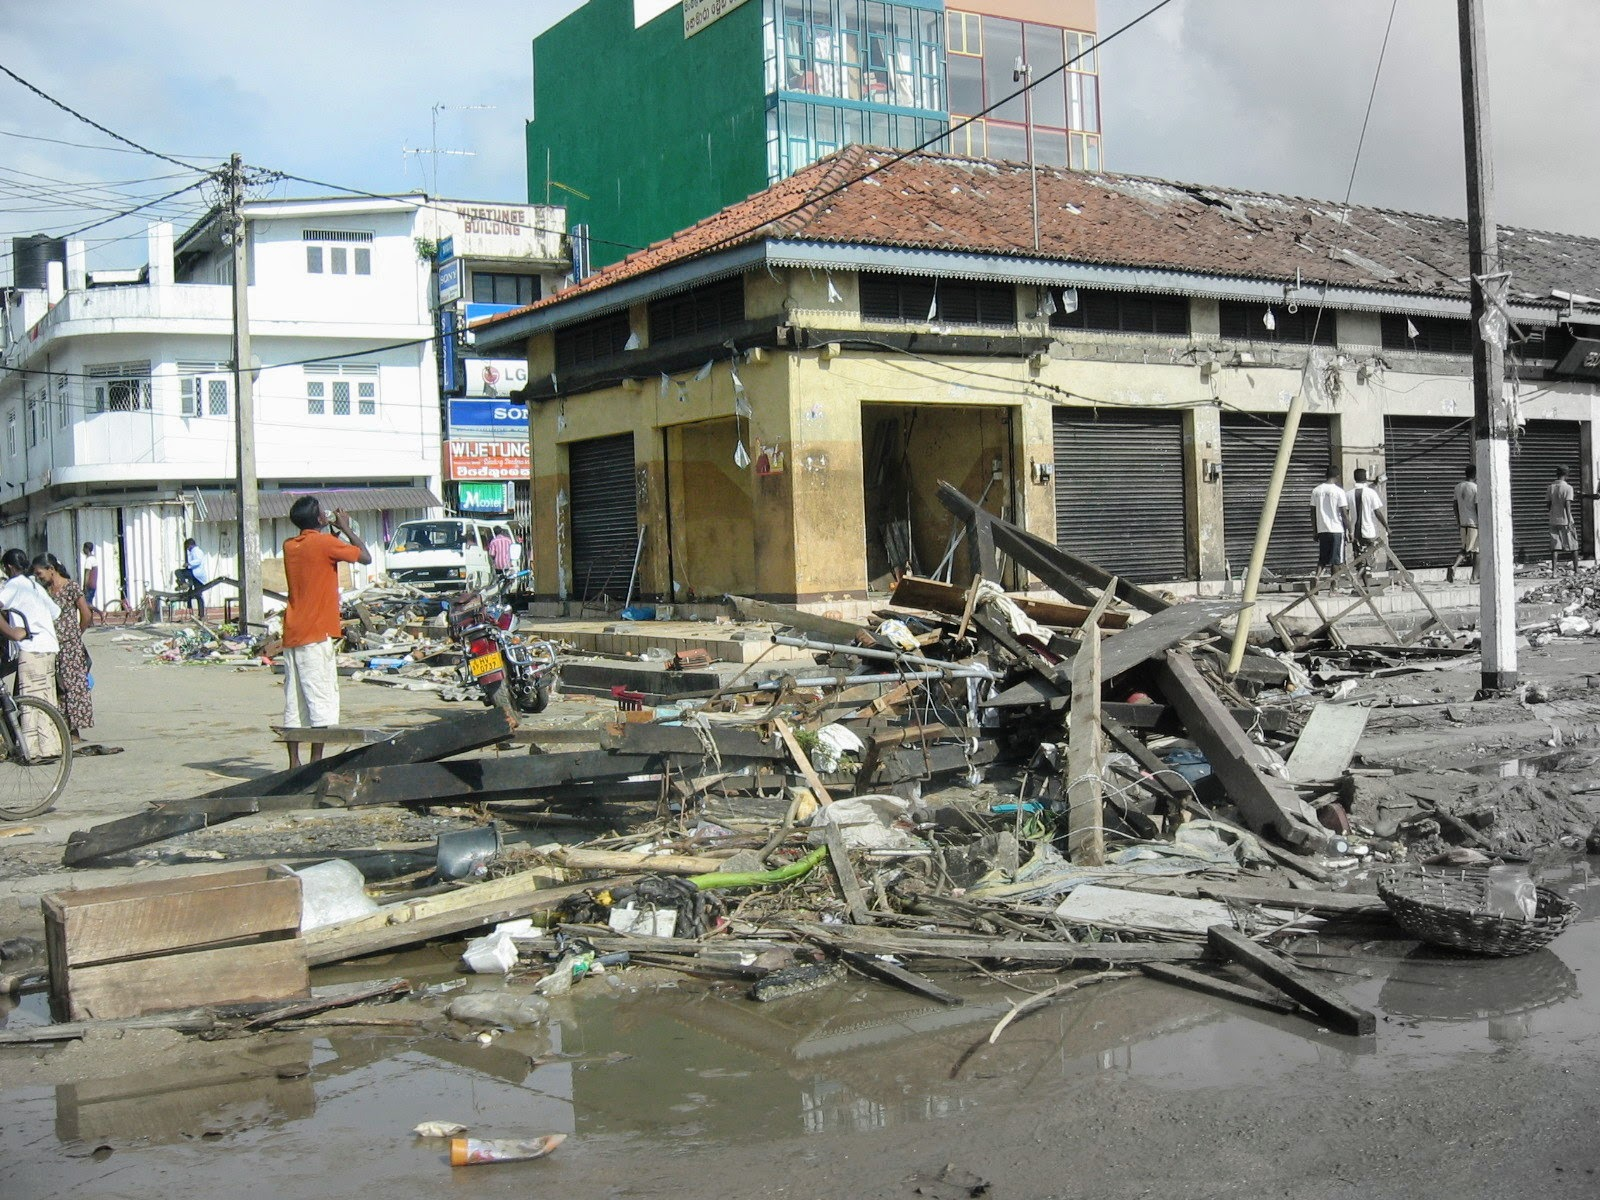 An Indonesian town was one of many devastated by the 2004 tsunami that swept through the region. On Wednesday, a 6.5-magnitude earthquake struck the region, and Direct Relief is responding with aid.